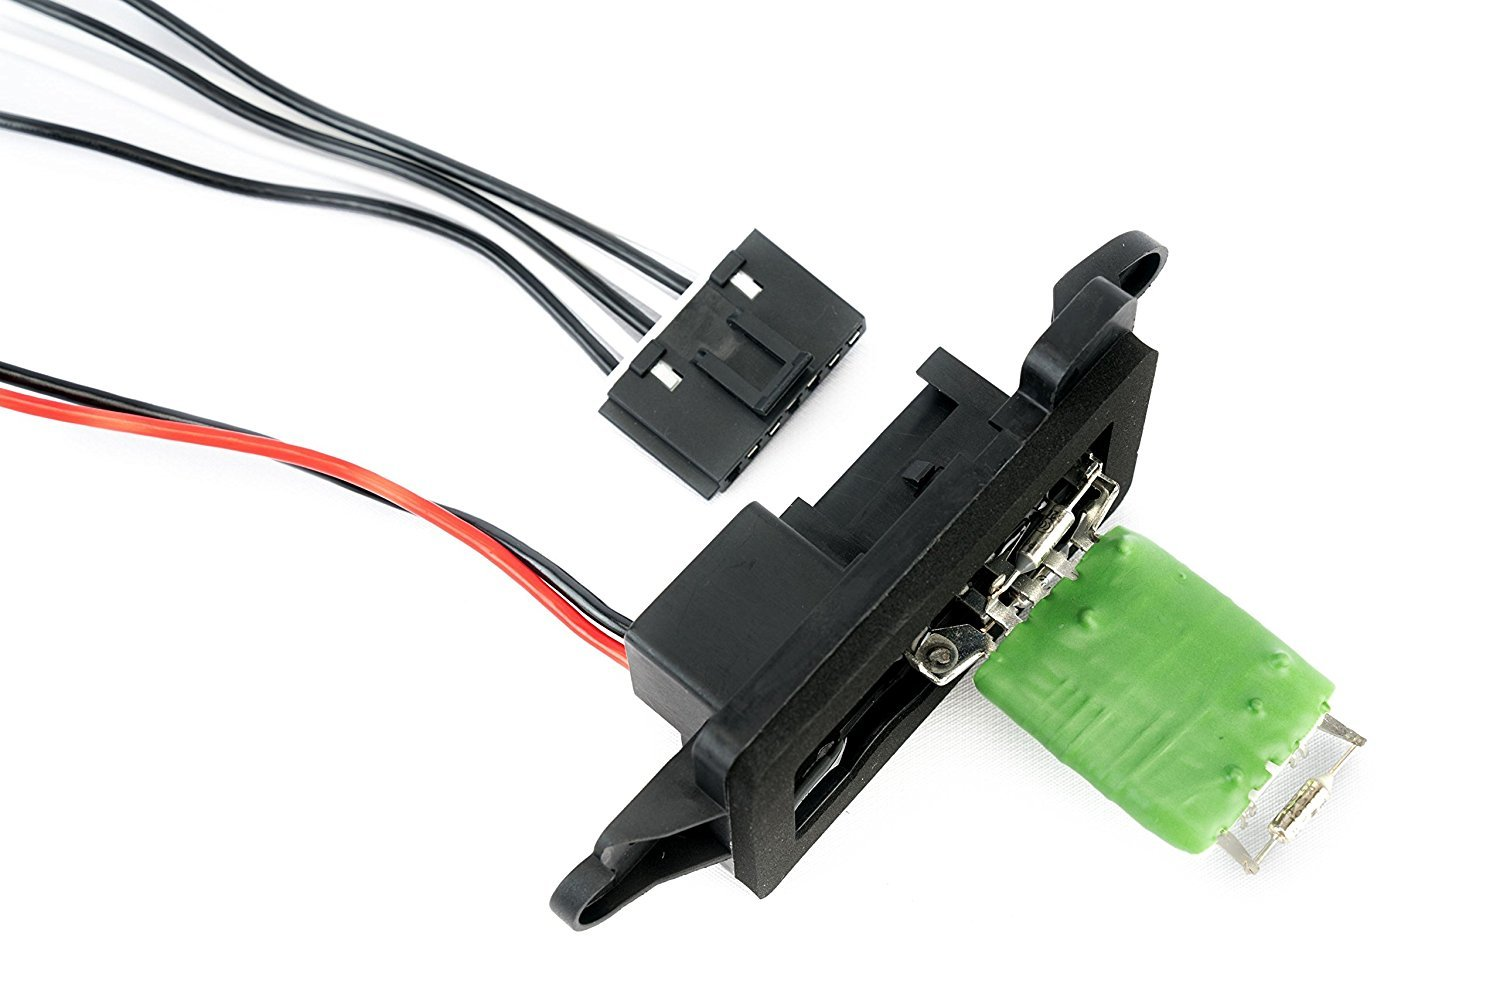 Ac Blower Motor Resistor Kit With Harness Replaces 89019088 973 Chevy 405